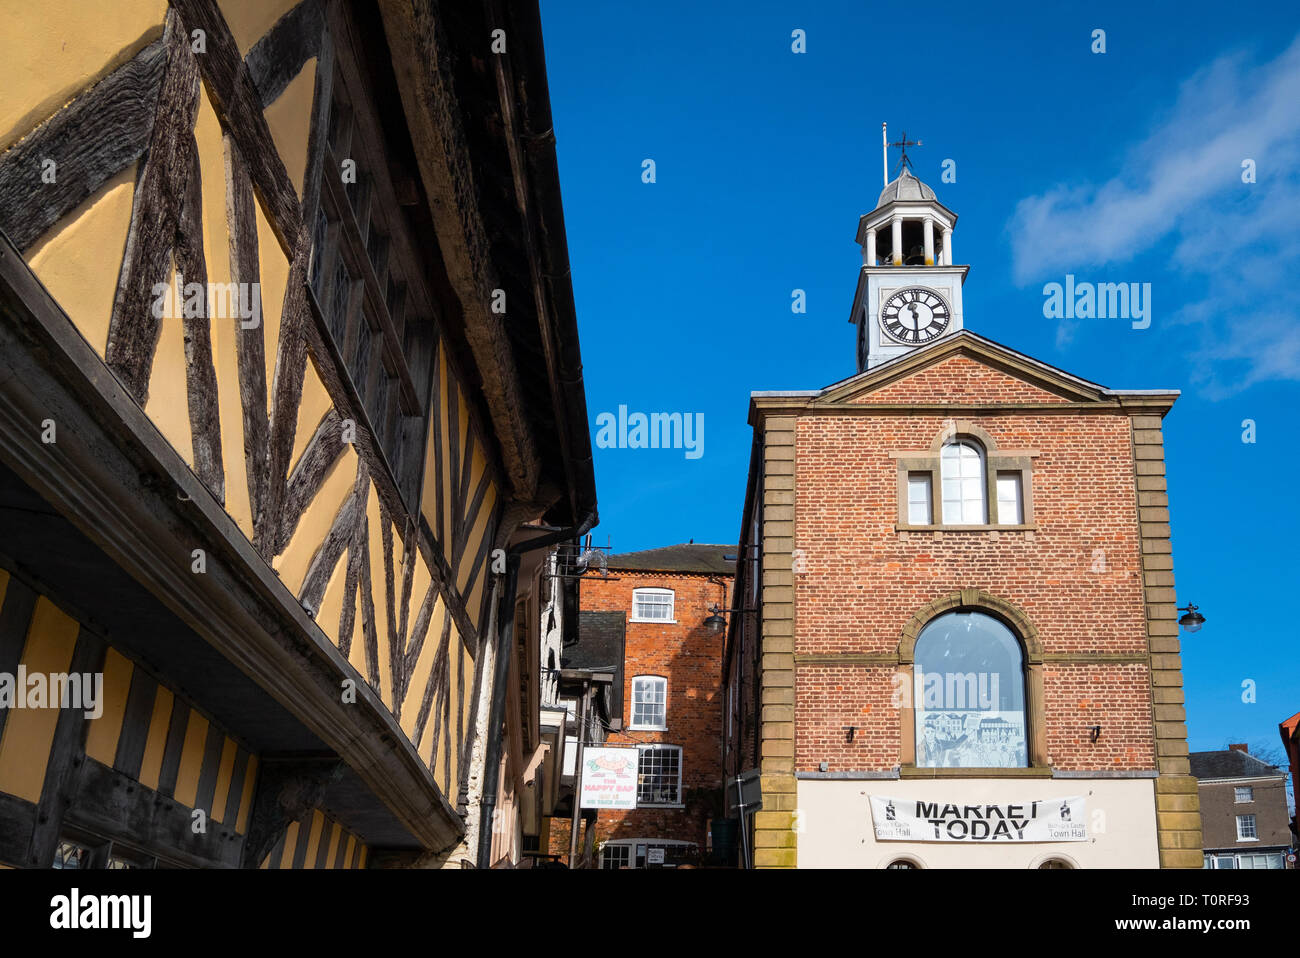 Town Hall and half timbered building in Bishops Castle, Shropshire, England, UK - Stock Image